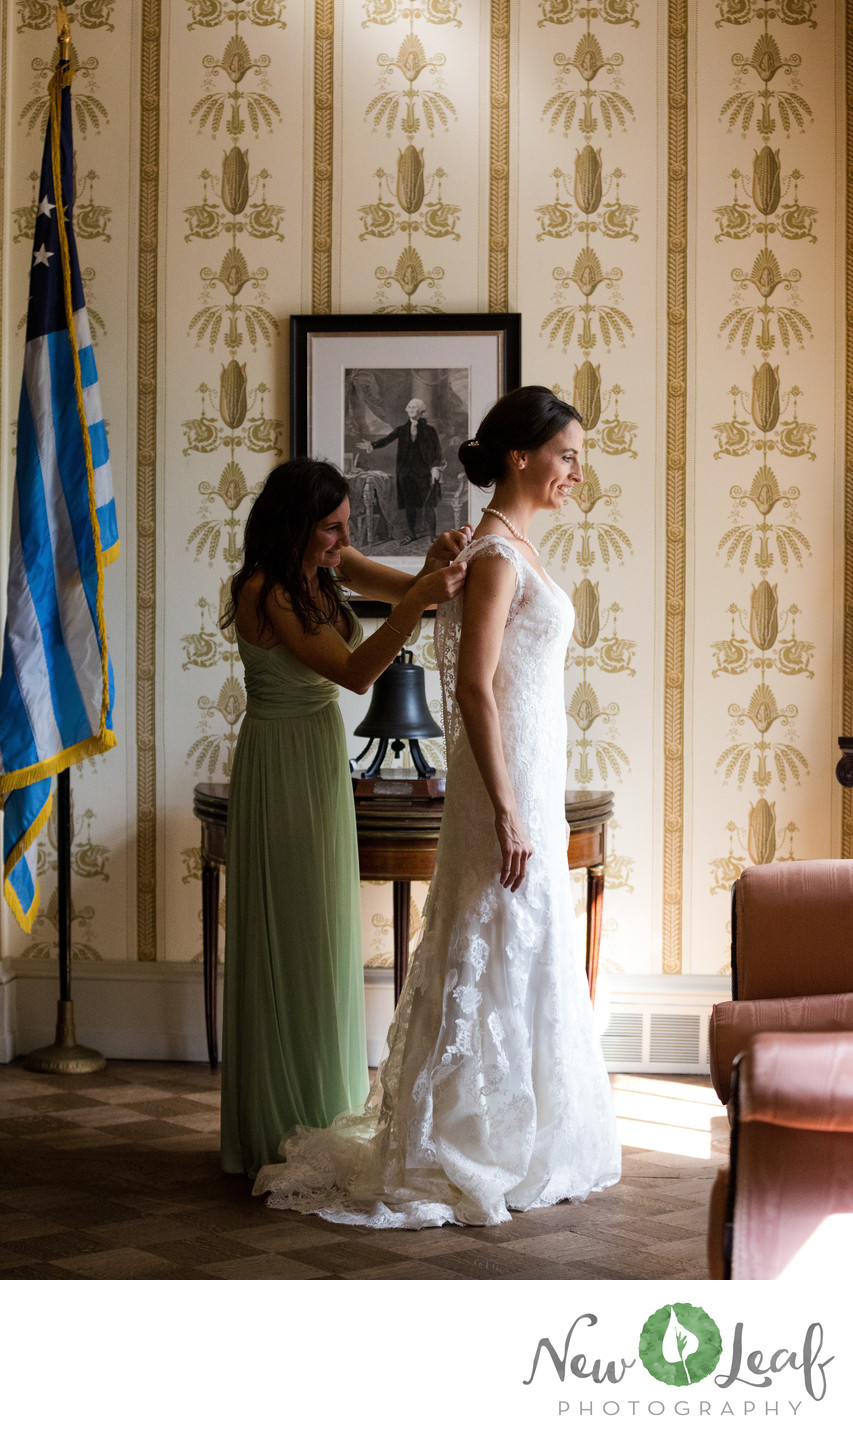 Wedding Photos at Hill-Physick House